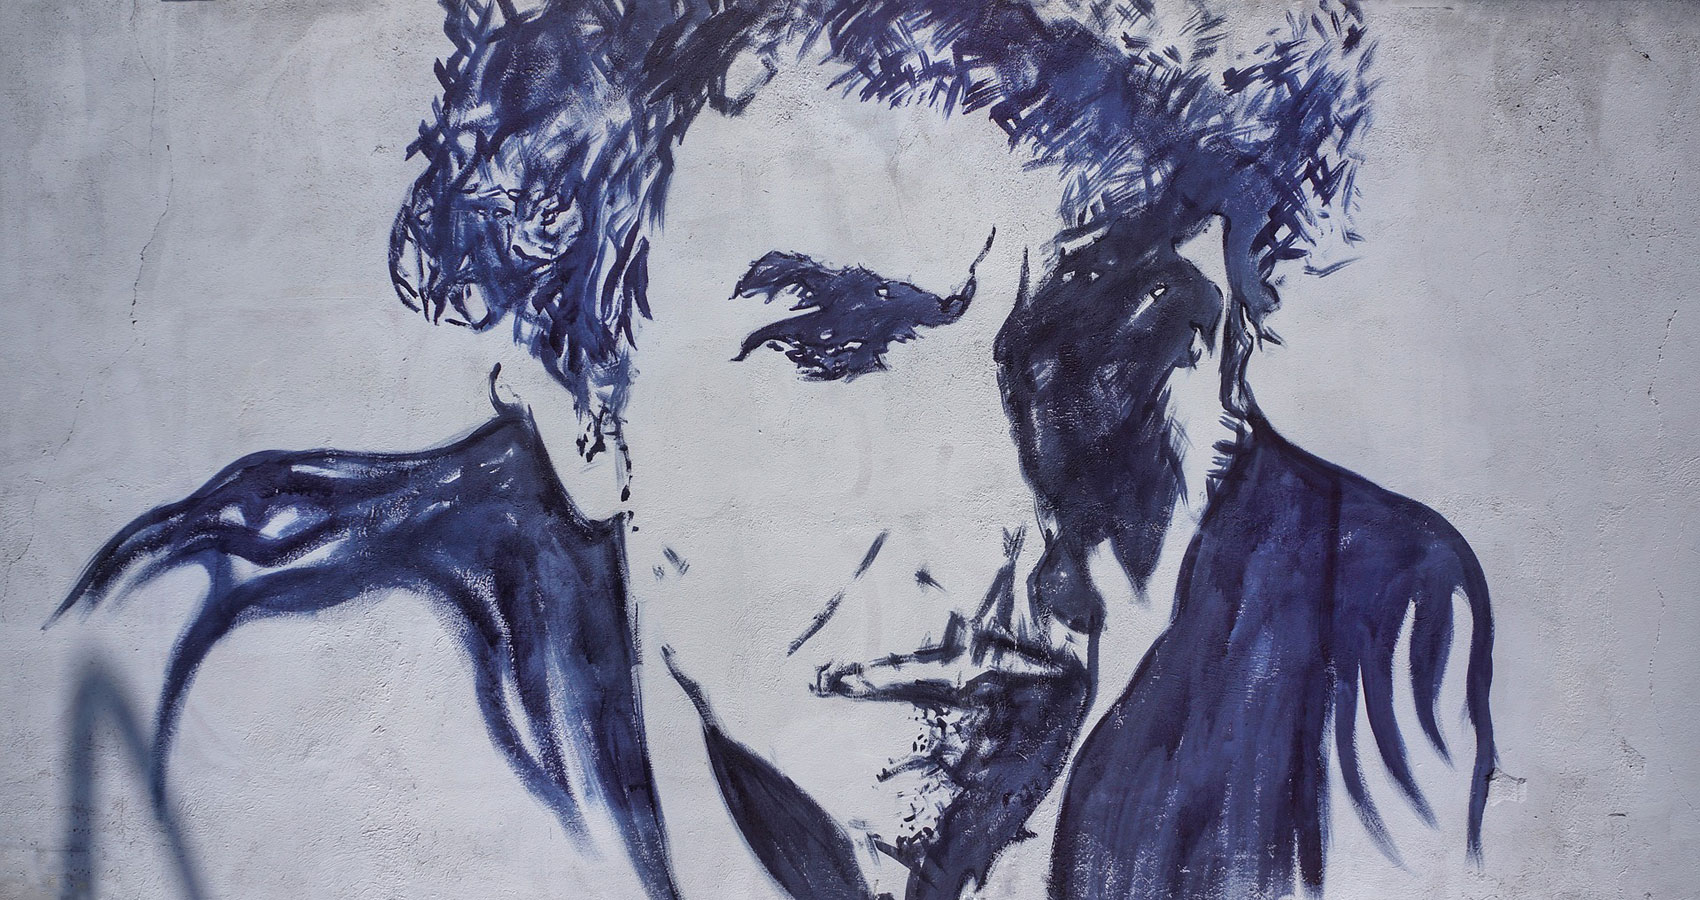 Magical Dylan by Mario William Vitale at Spillwords.com